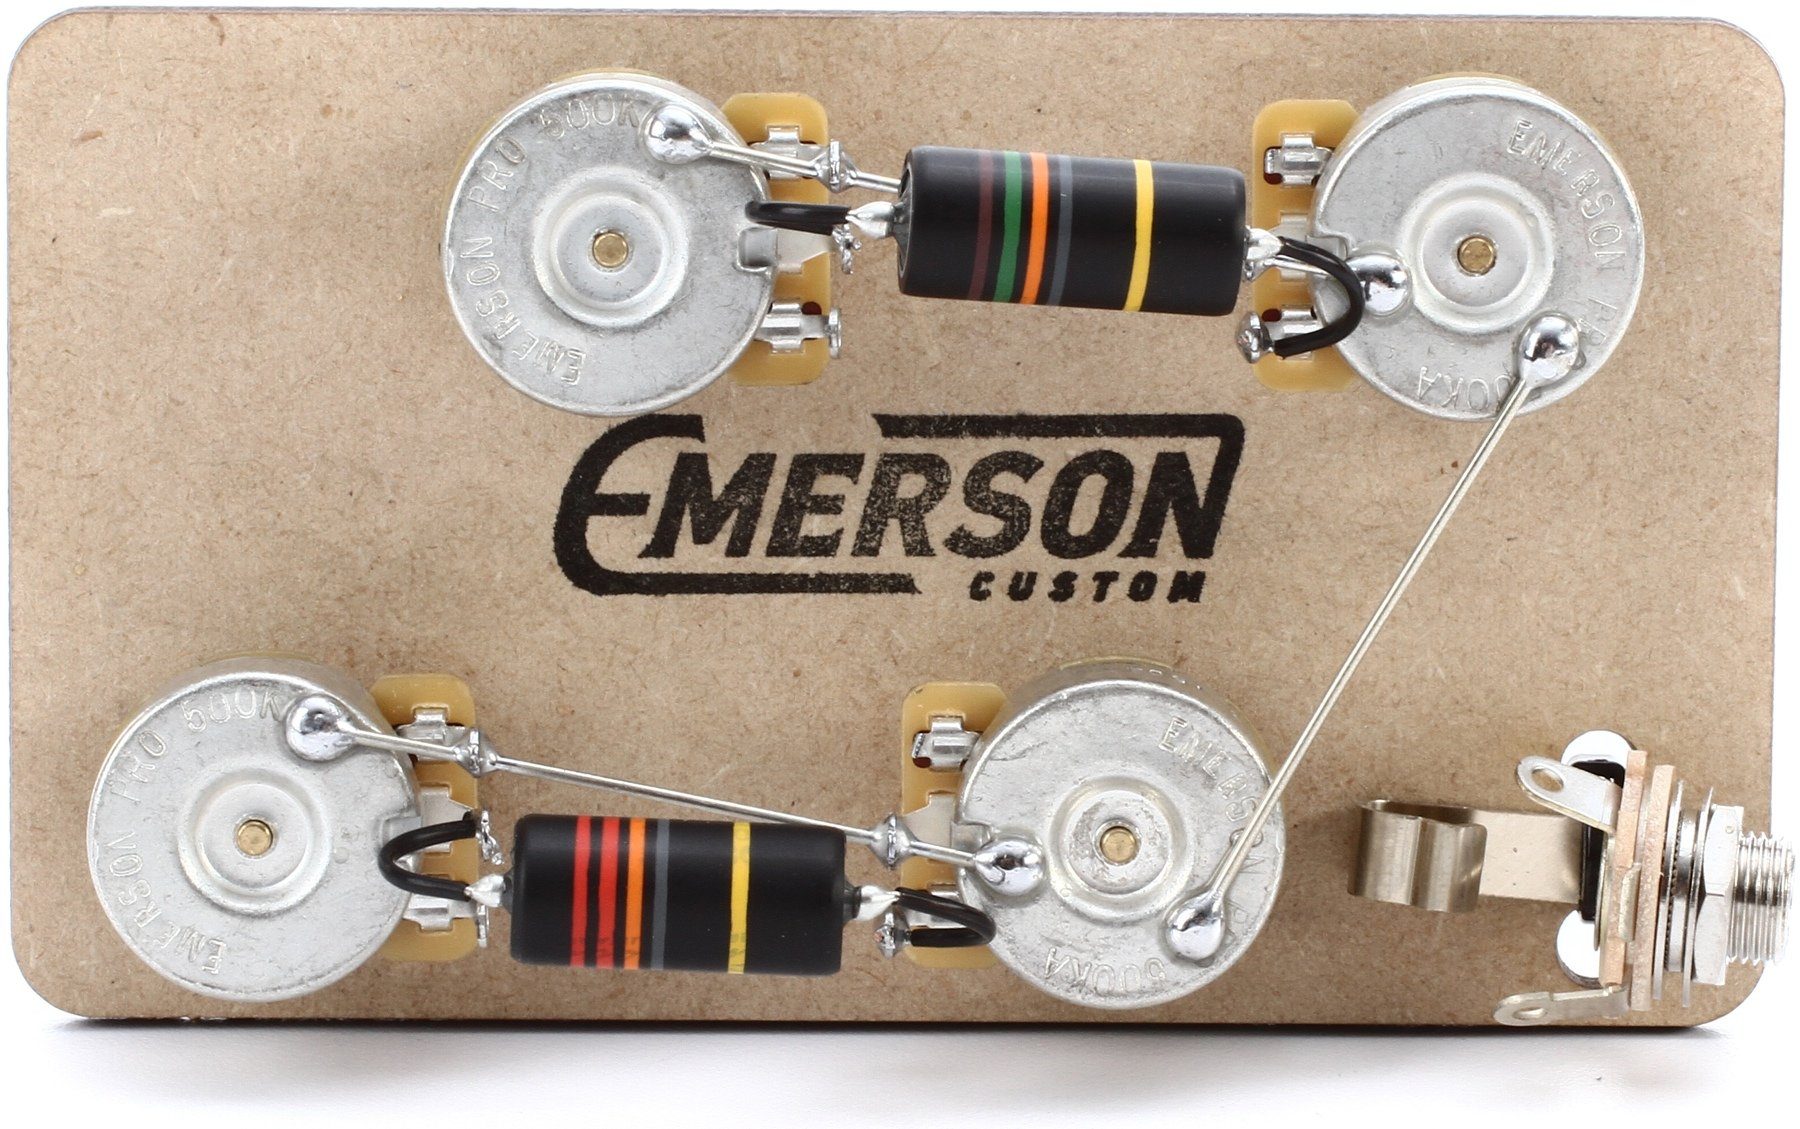 Emerson Custom Prewired Kit For Gibson Les Paul Guitars Long Shaft Double Neck Guitar Wiring Diagram Image 1